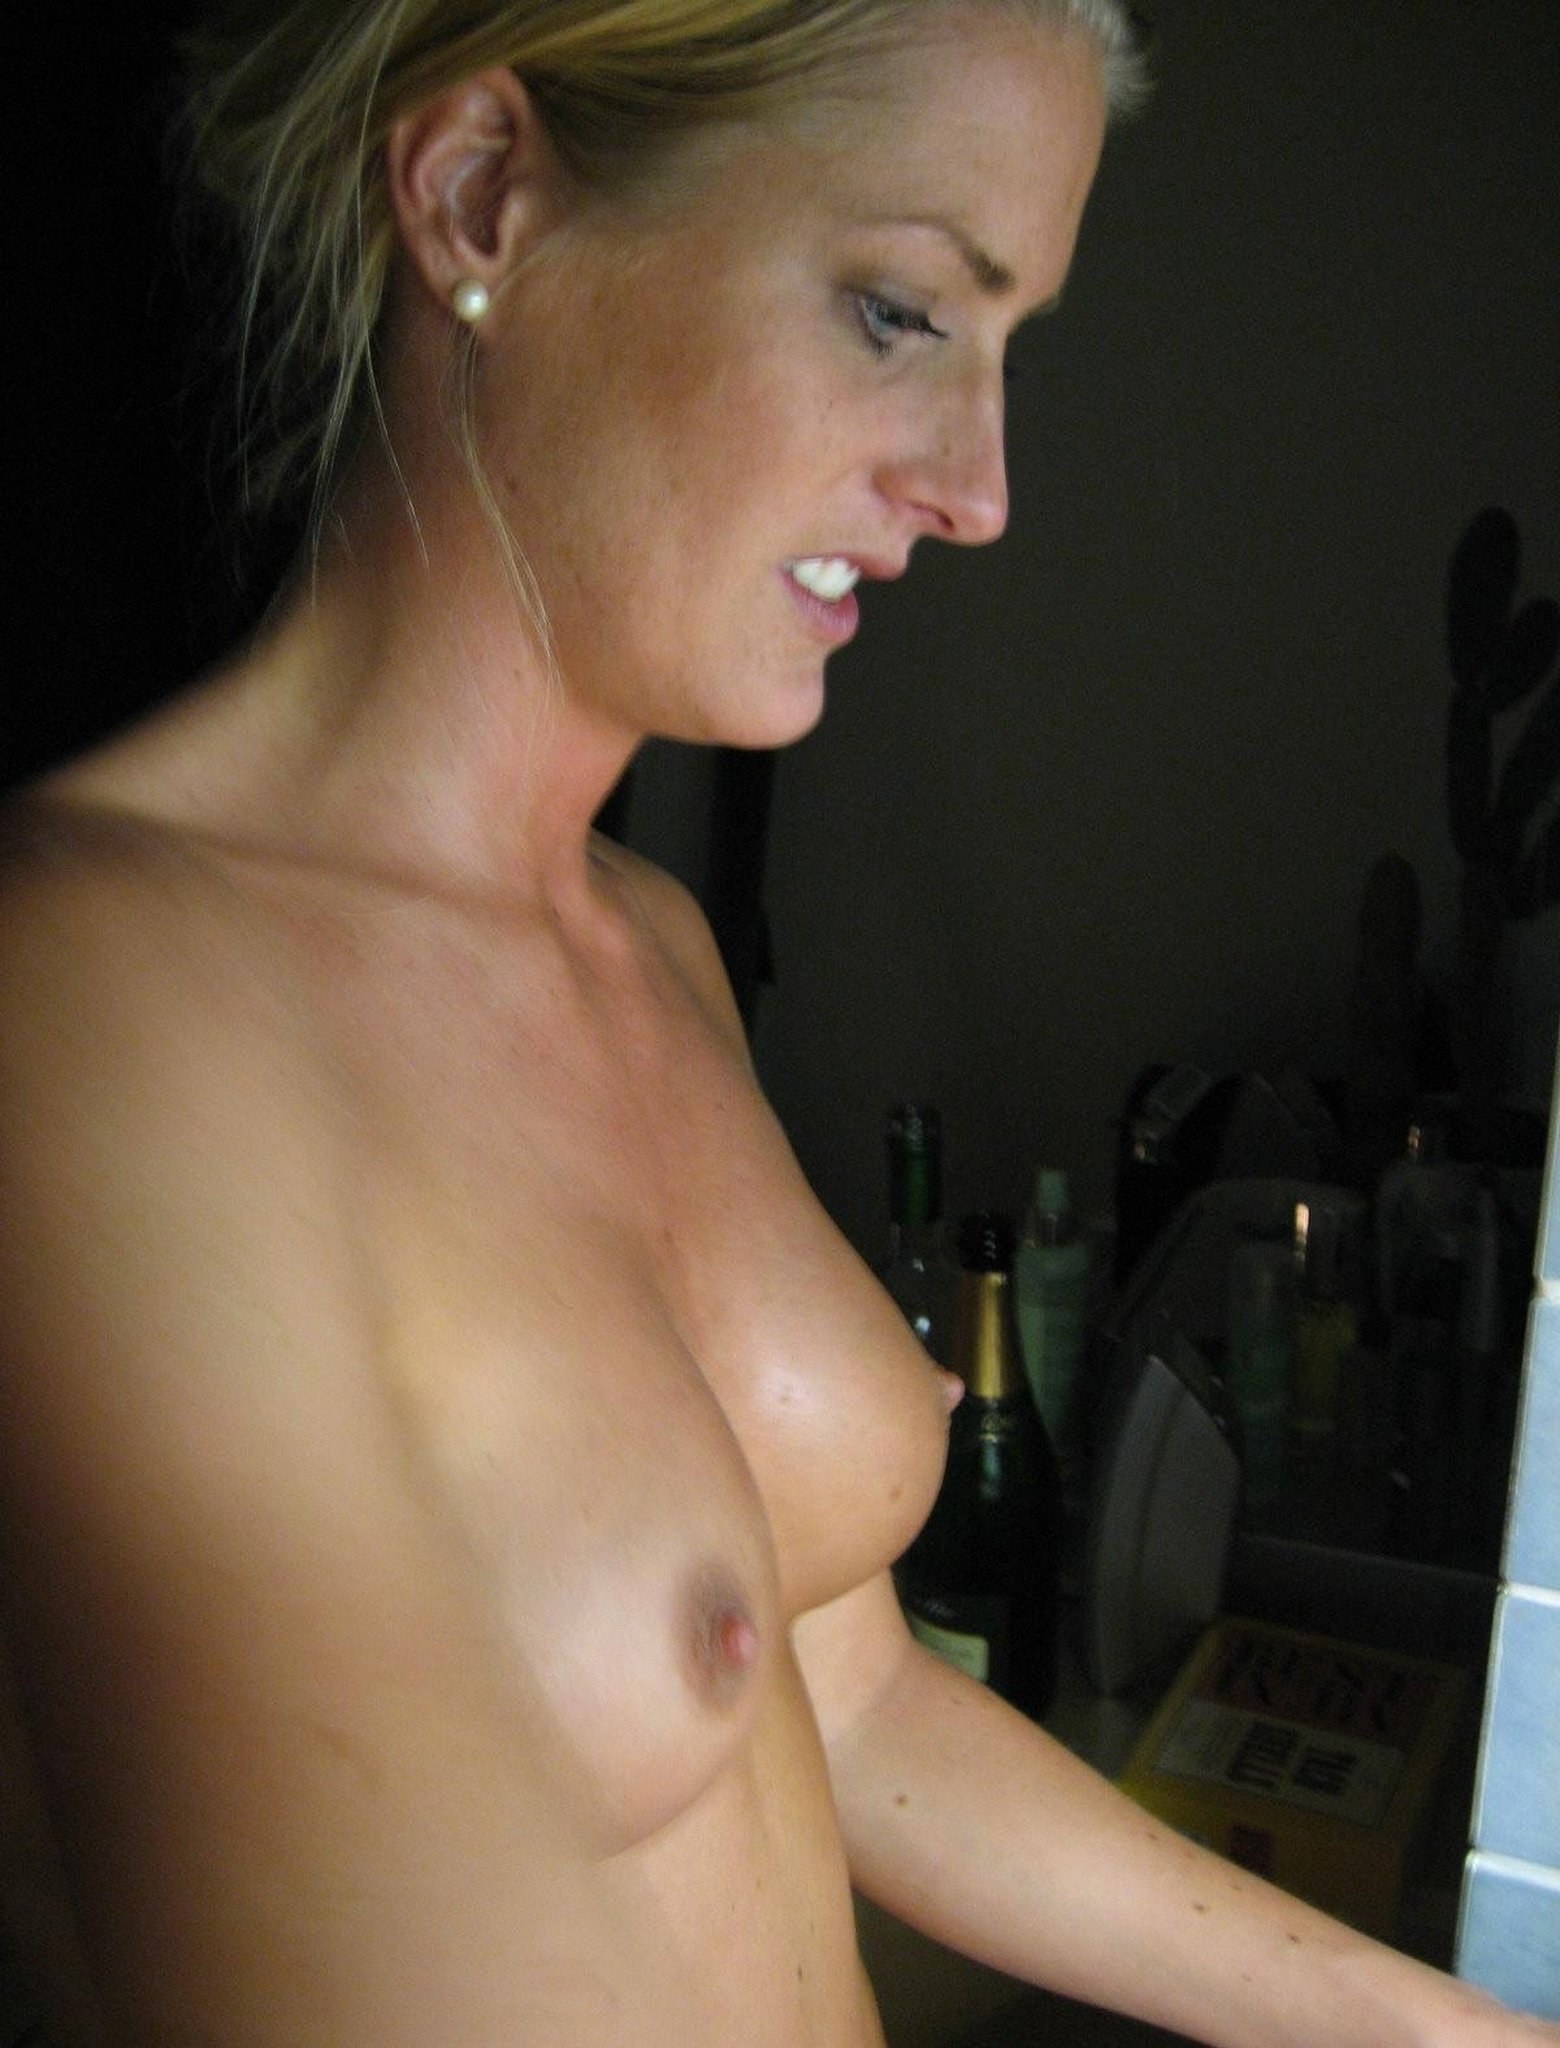 mature dirty panties female squirting is it urine